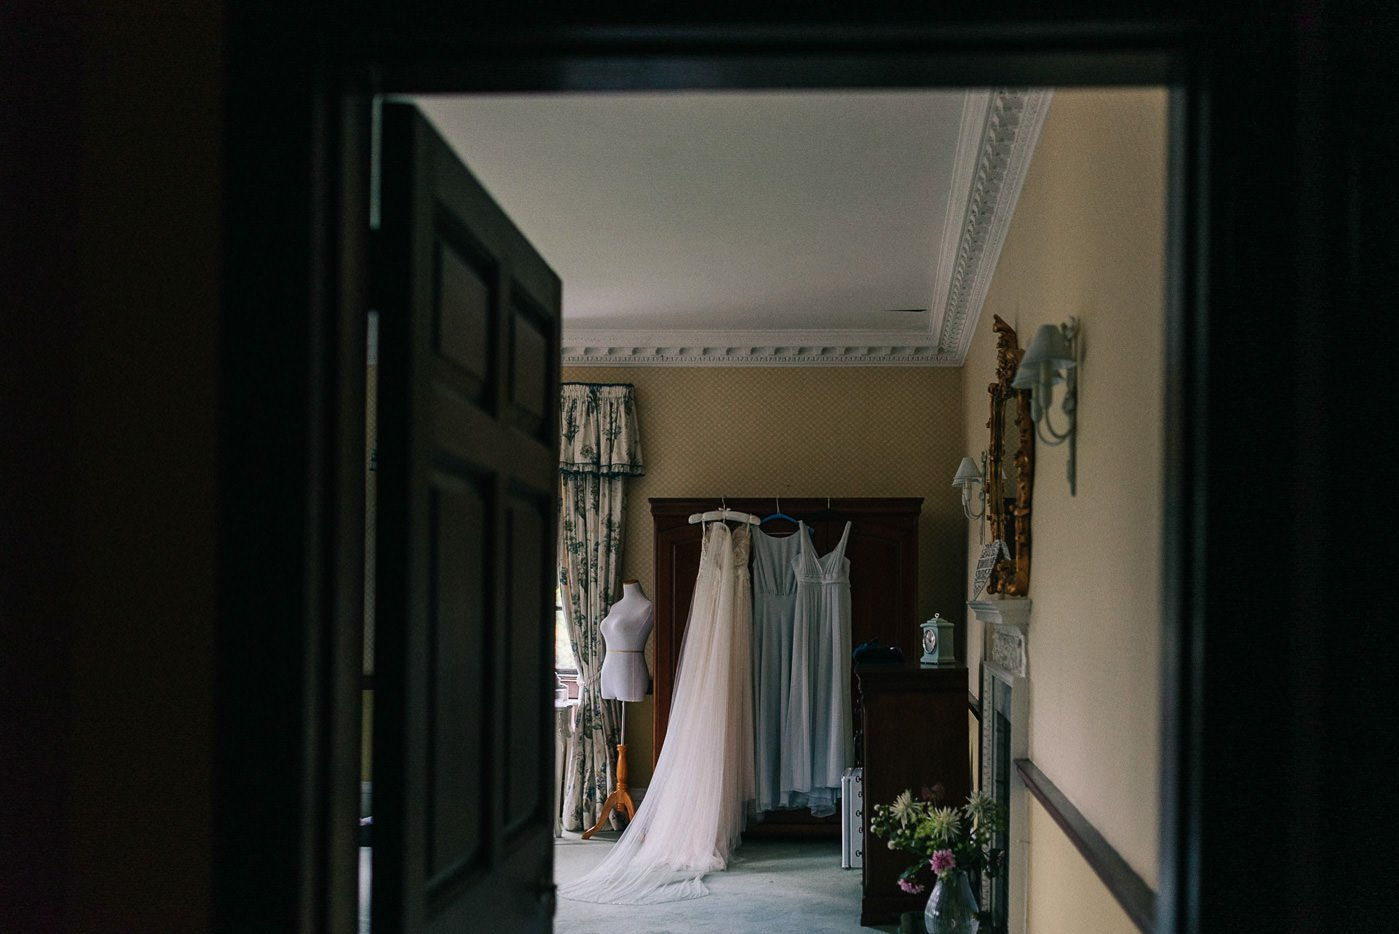 Sprivers Mansion Wedding dresses hanging